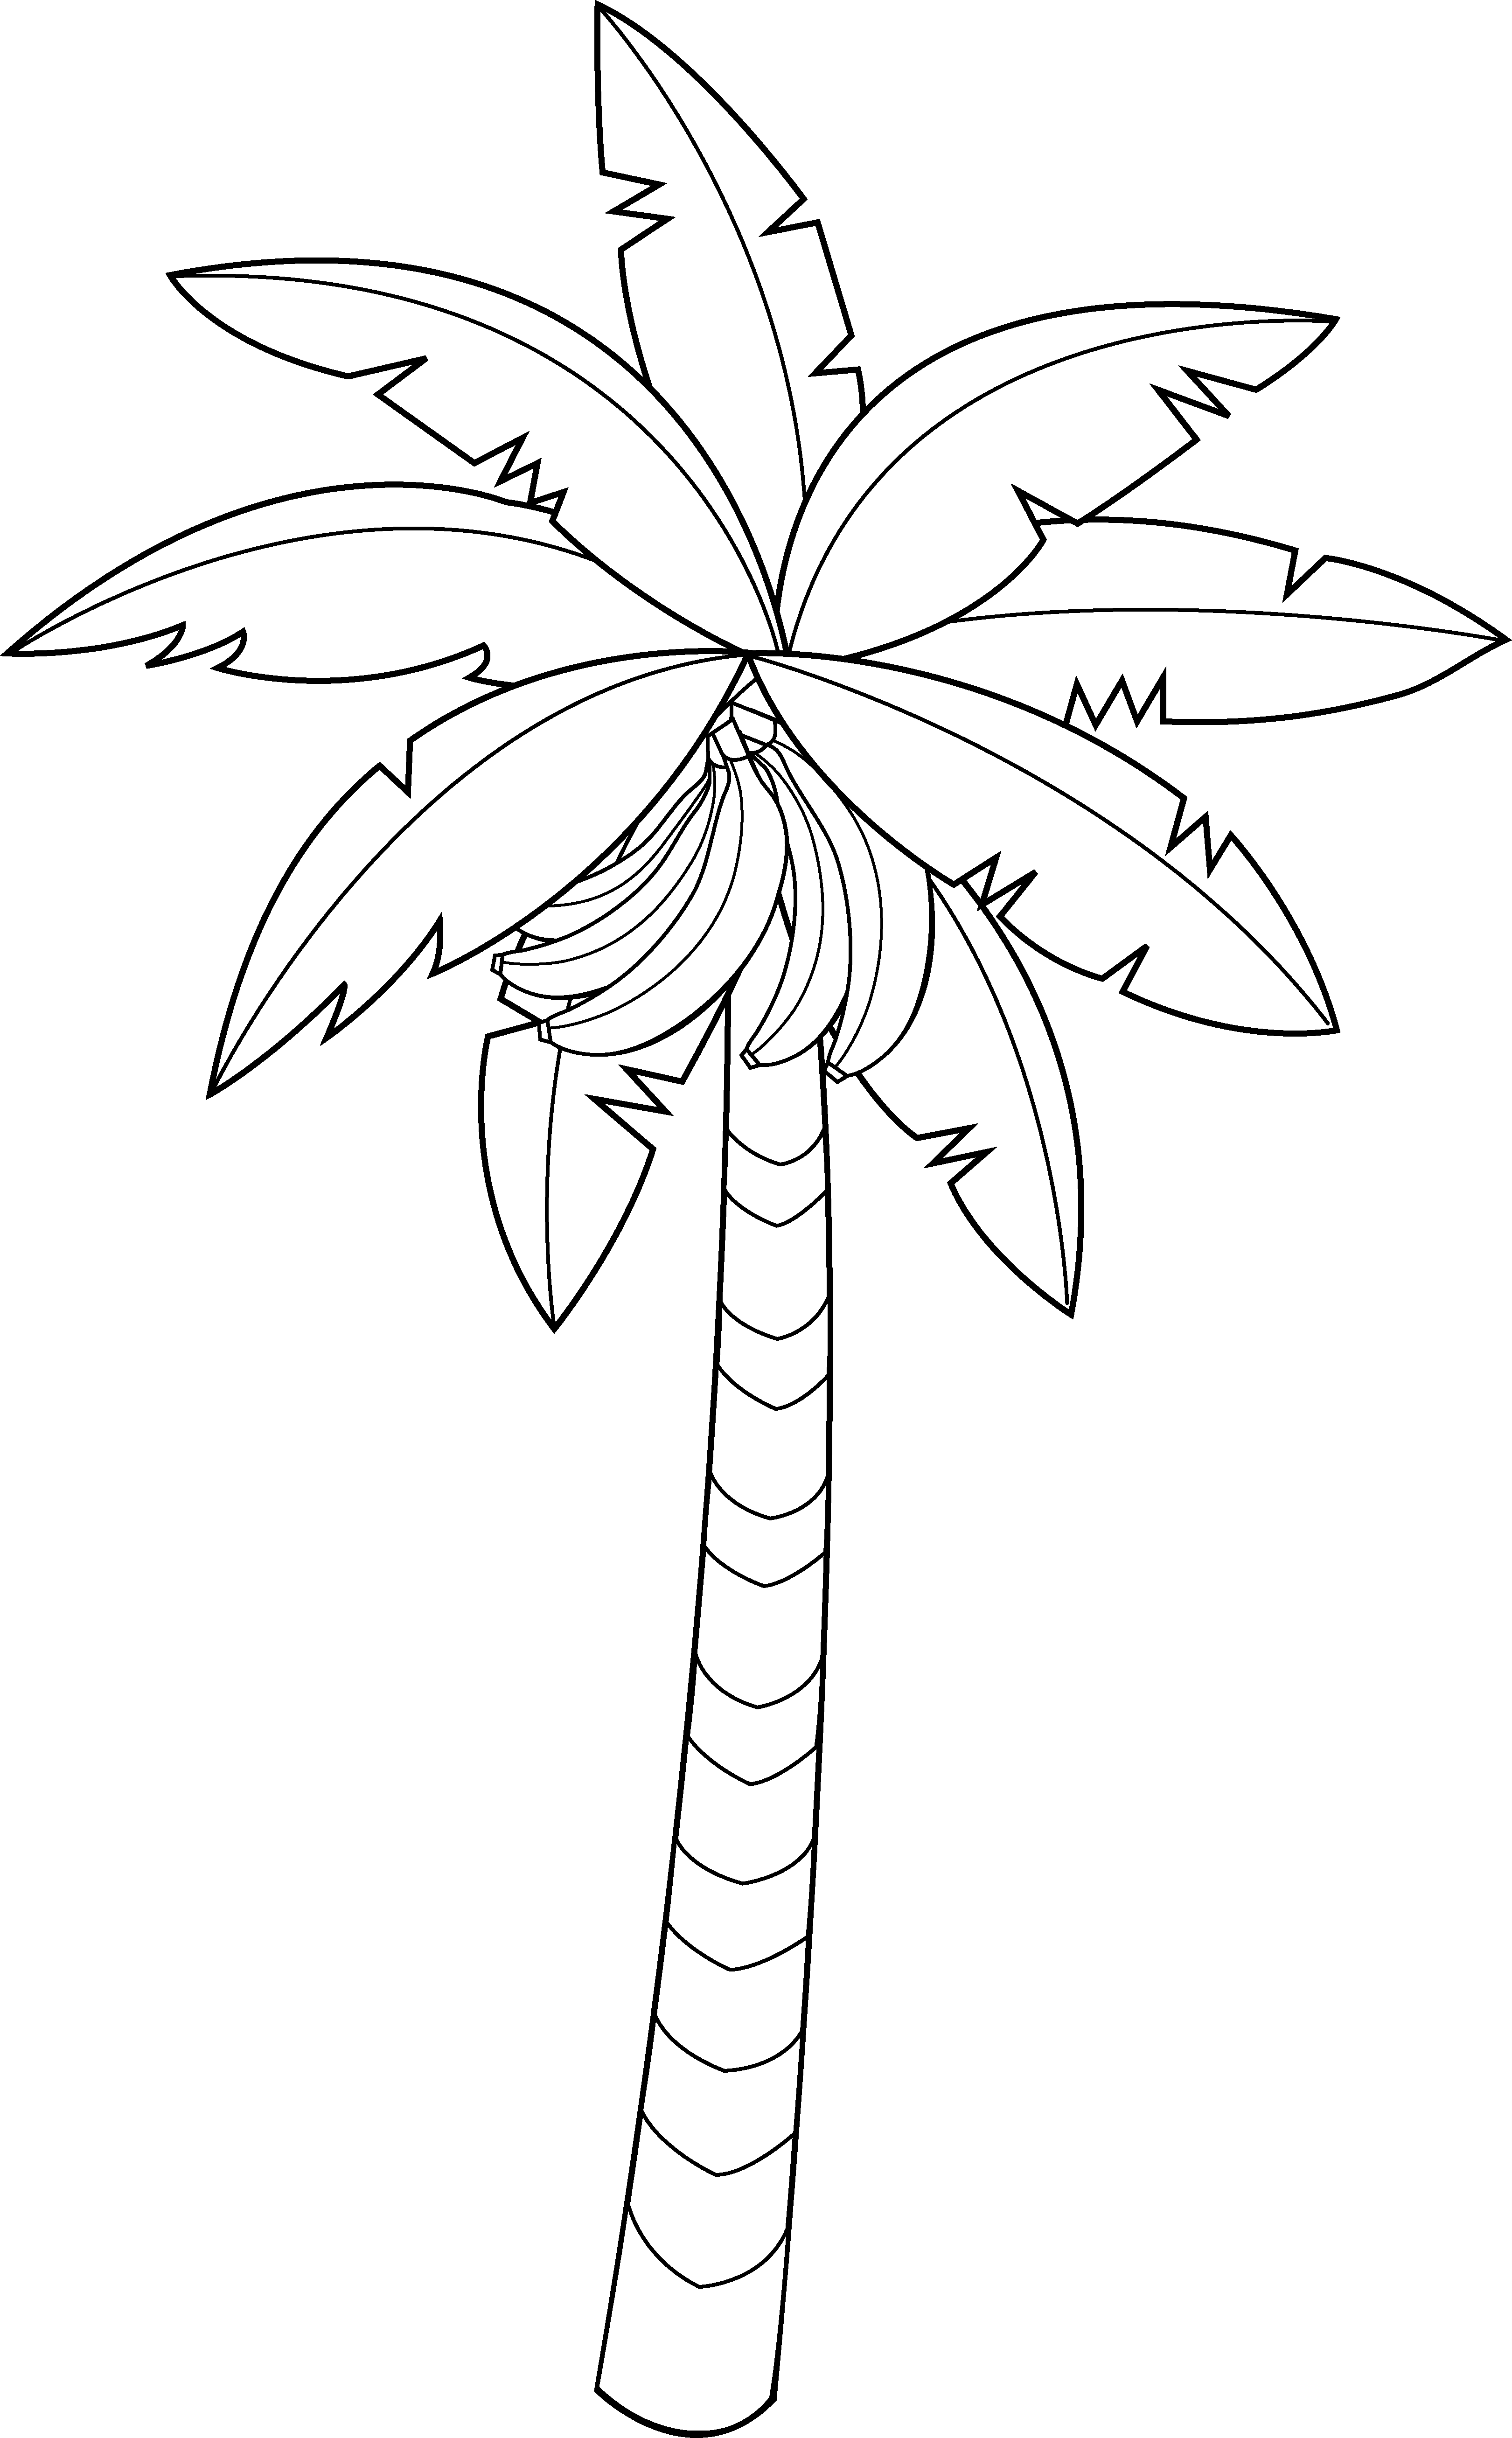 Coloring pages page. Clipart tree banana